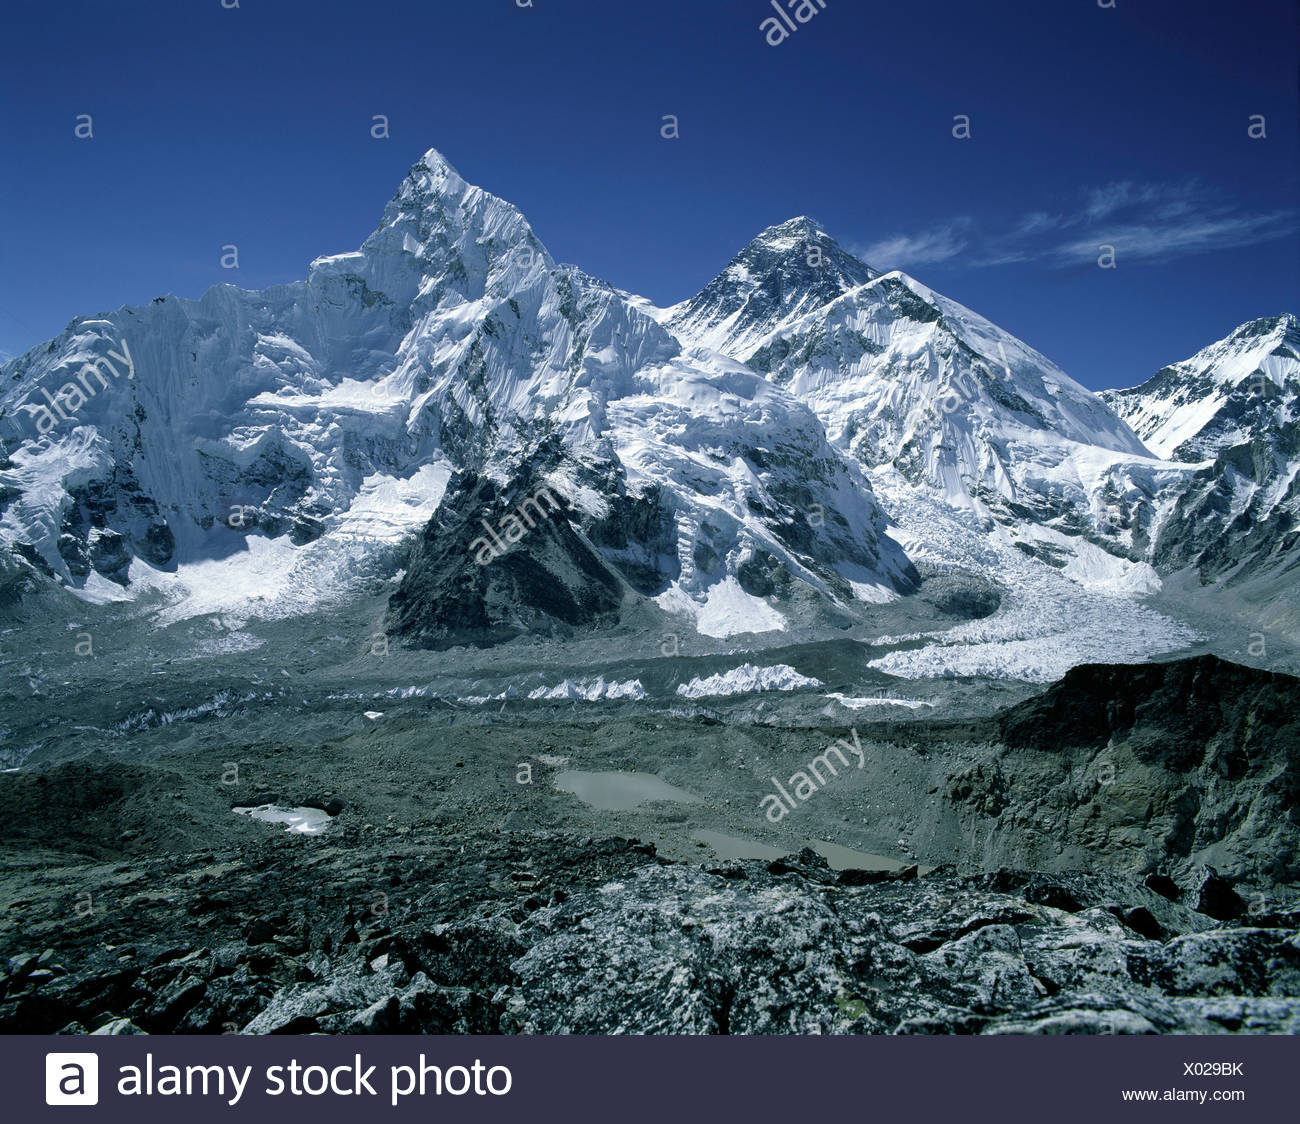 Mount Everest - Stock Image